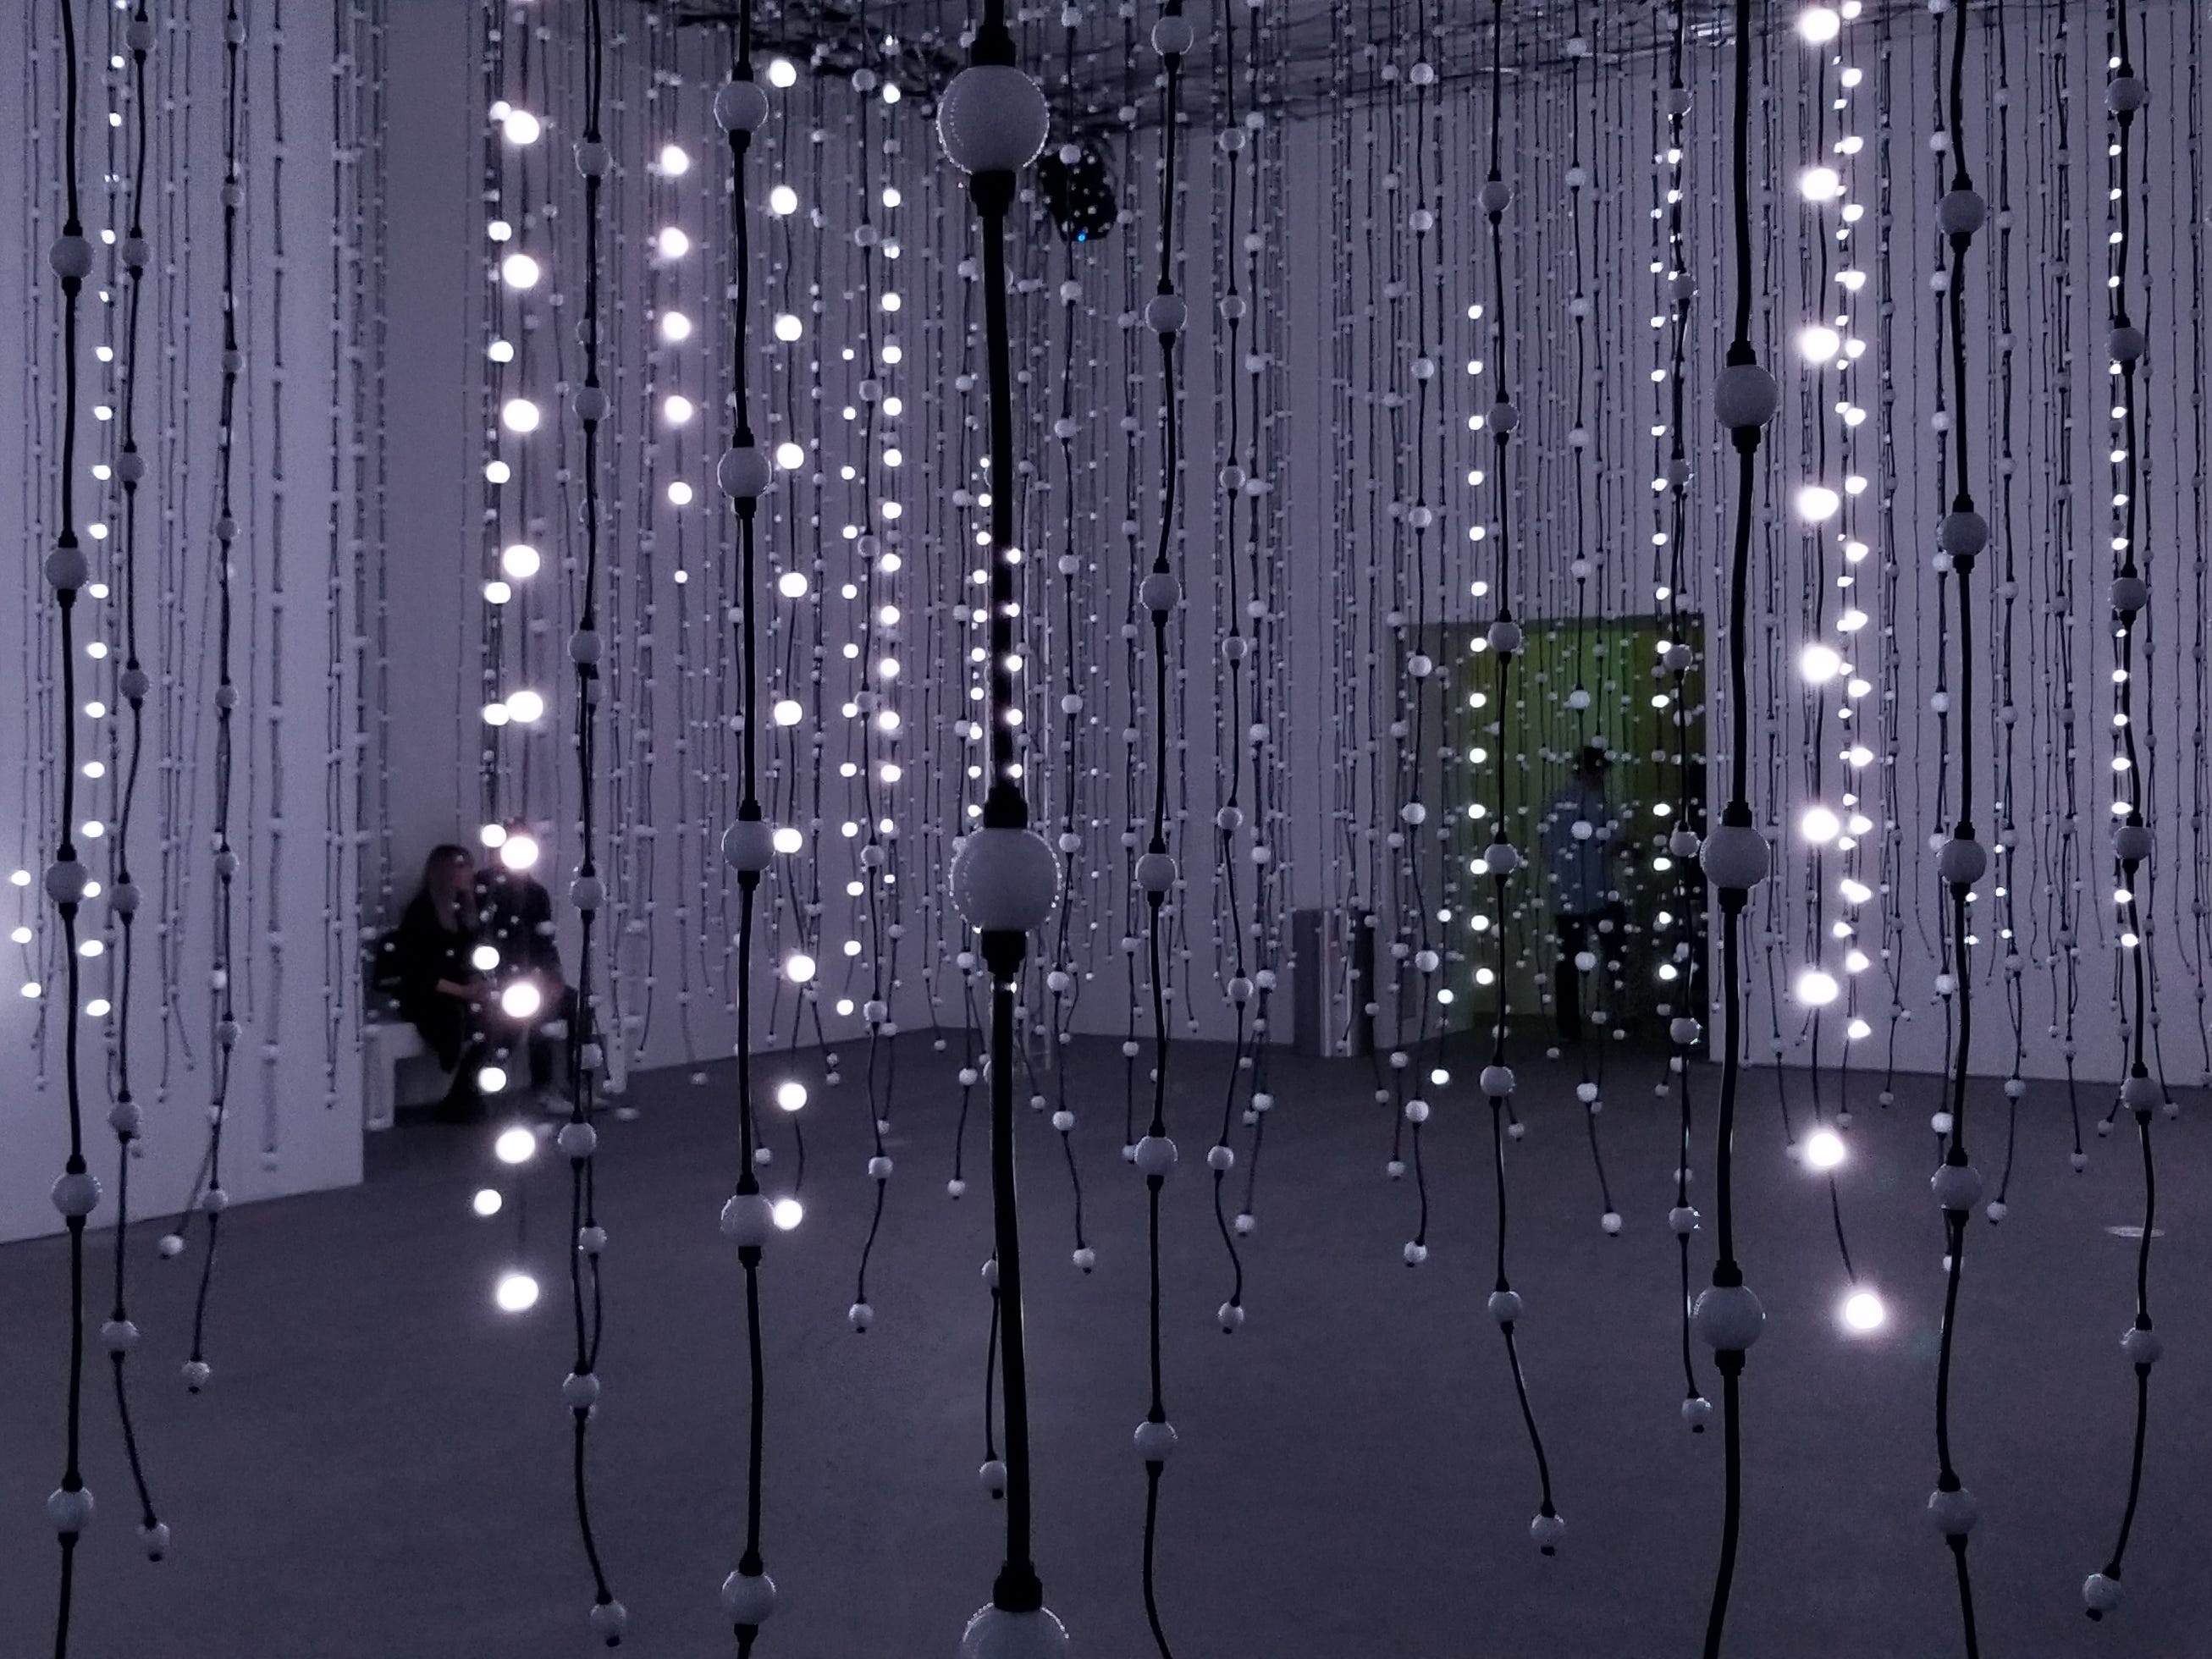 """""""Submergence"""" by Squidsoup is composed of 8,064 individual points of light that continually change colors in correspondence to music. The artwork is part of Wonderspaces Arizona, an immersive art show open April through mid-July 2019 at Scottsdale Fashion Square."""